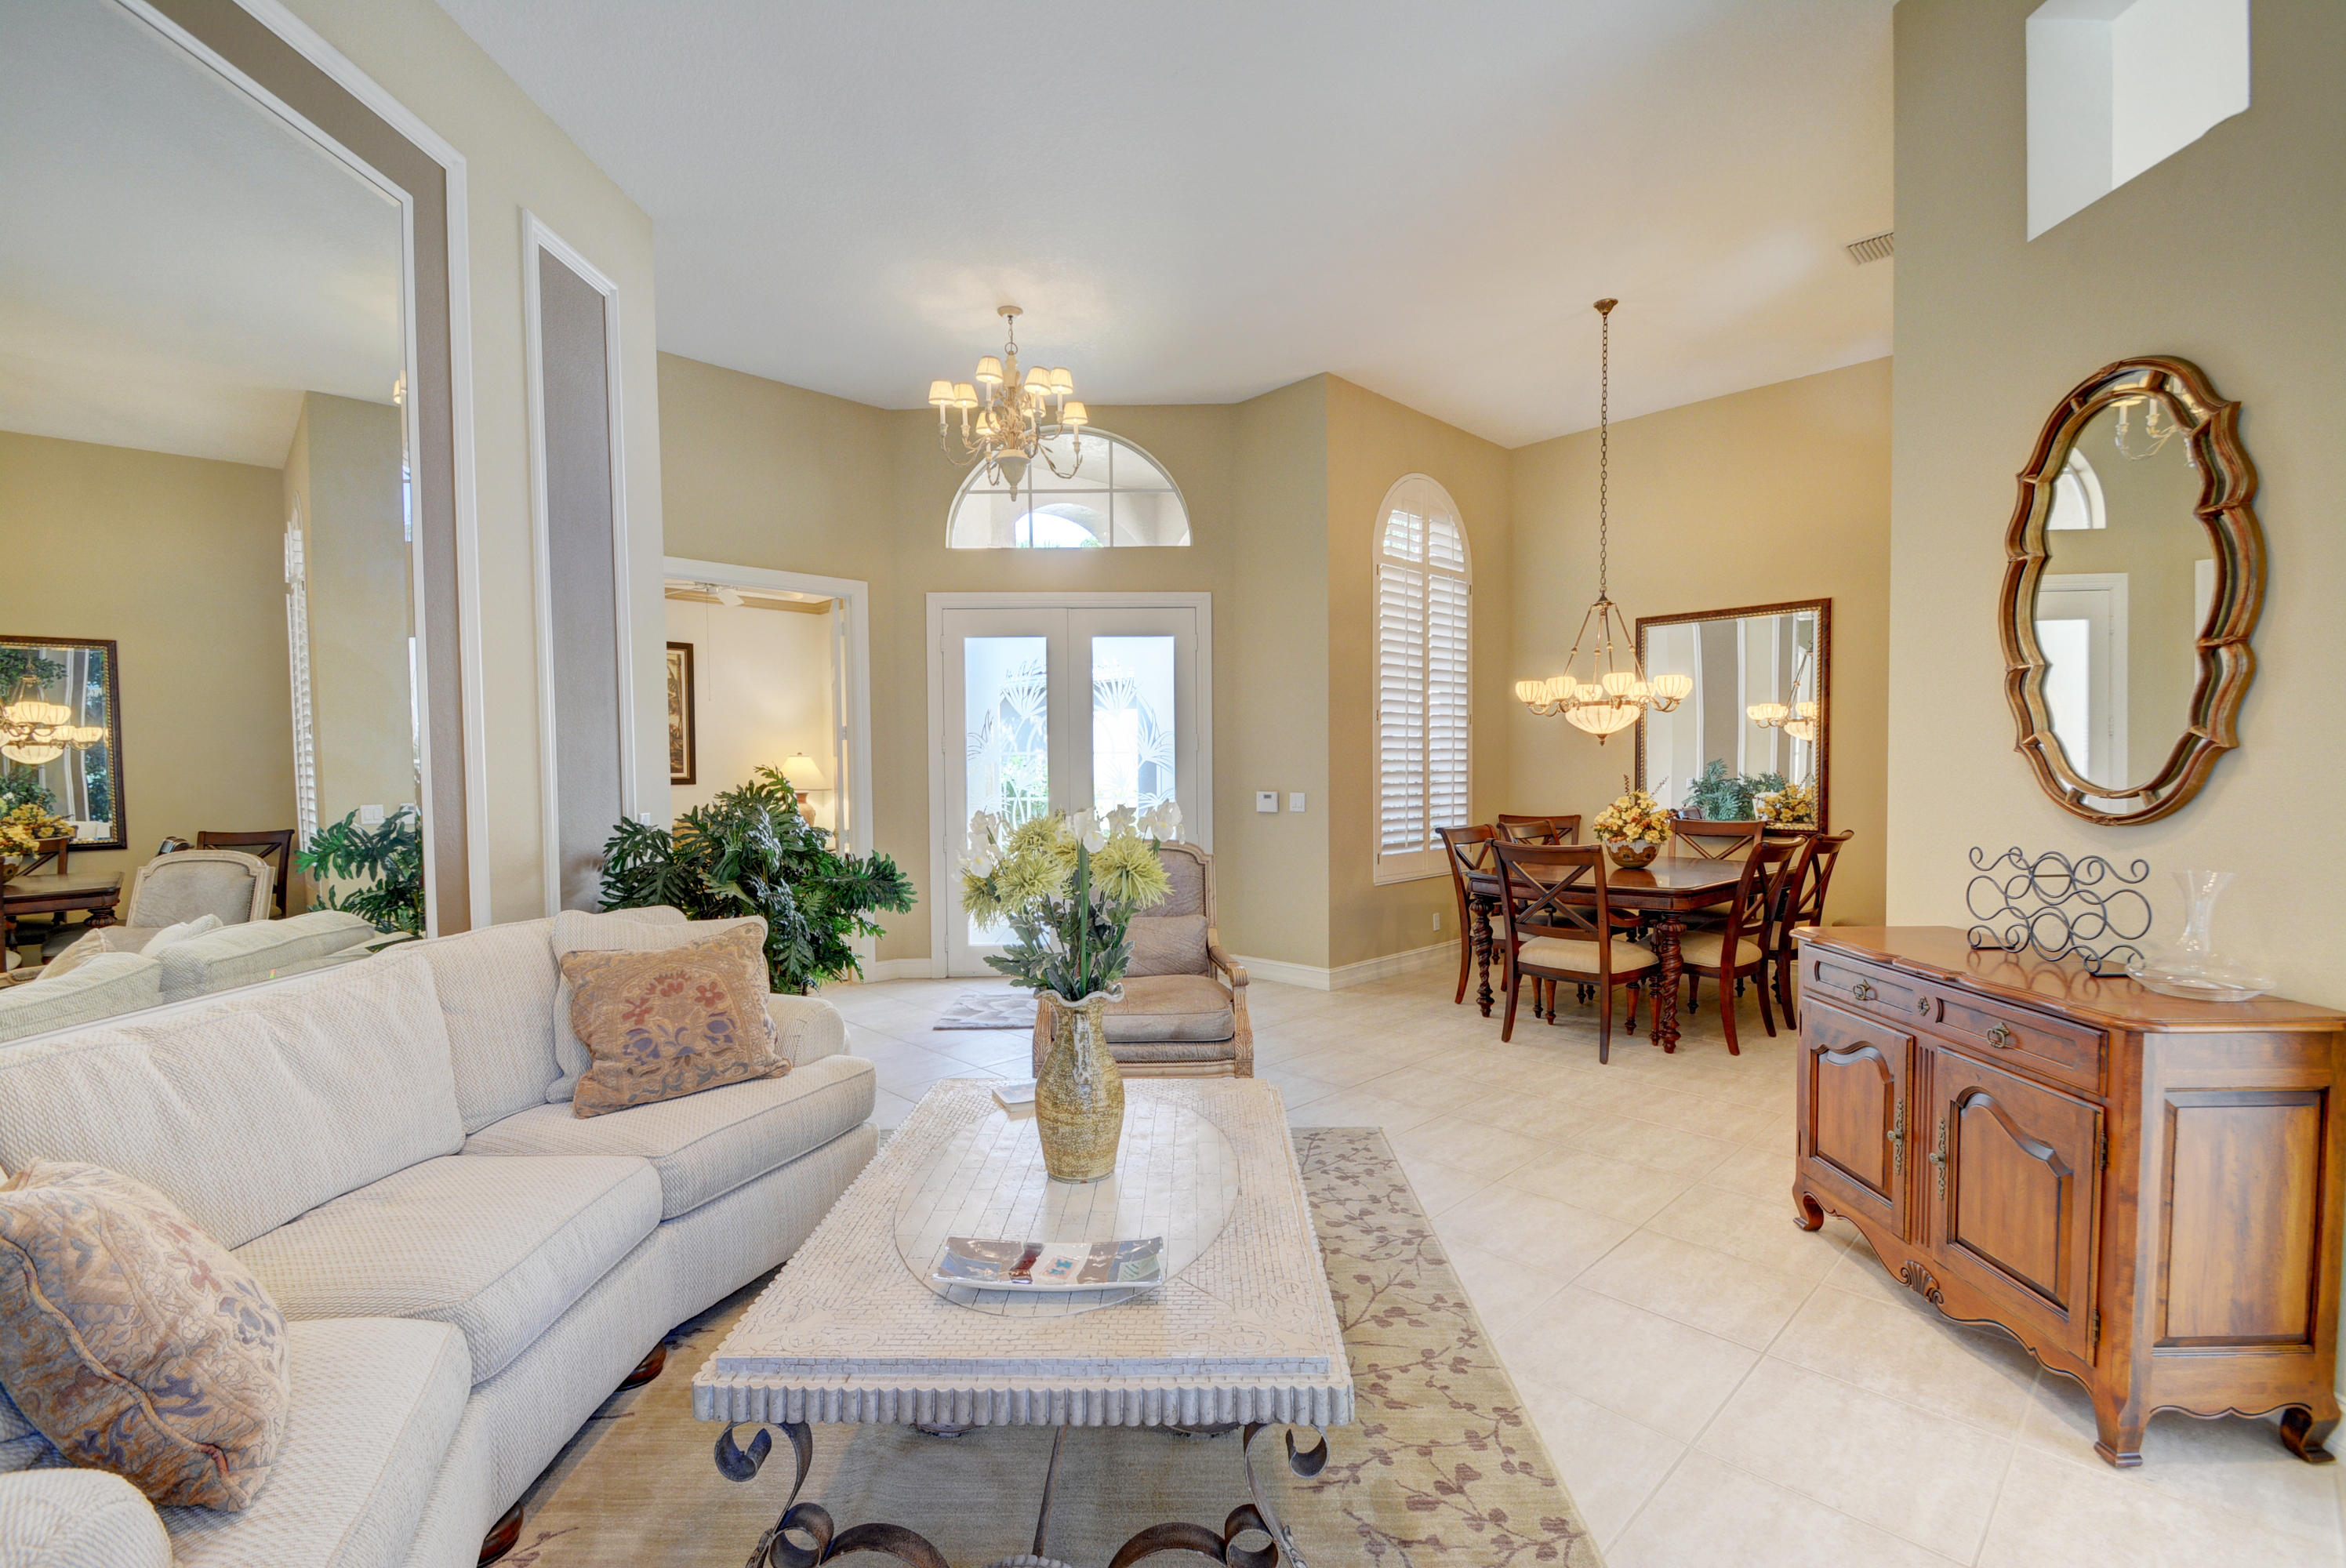 167 Orchid Cay Drive Palm Beach Gardens, FL 33418 small photo 19